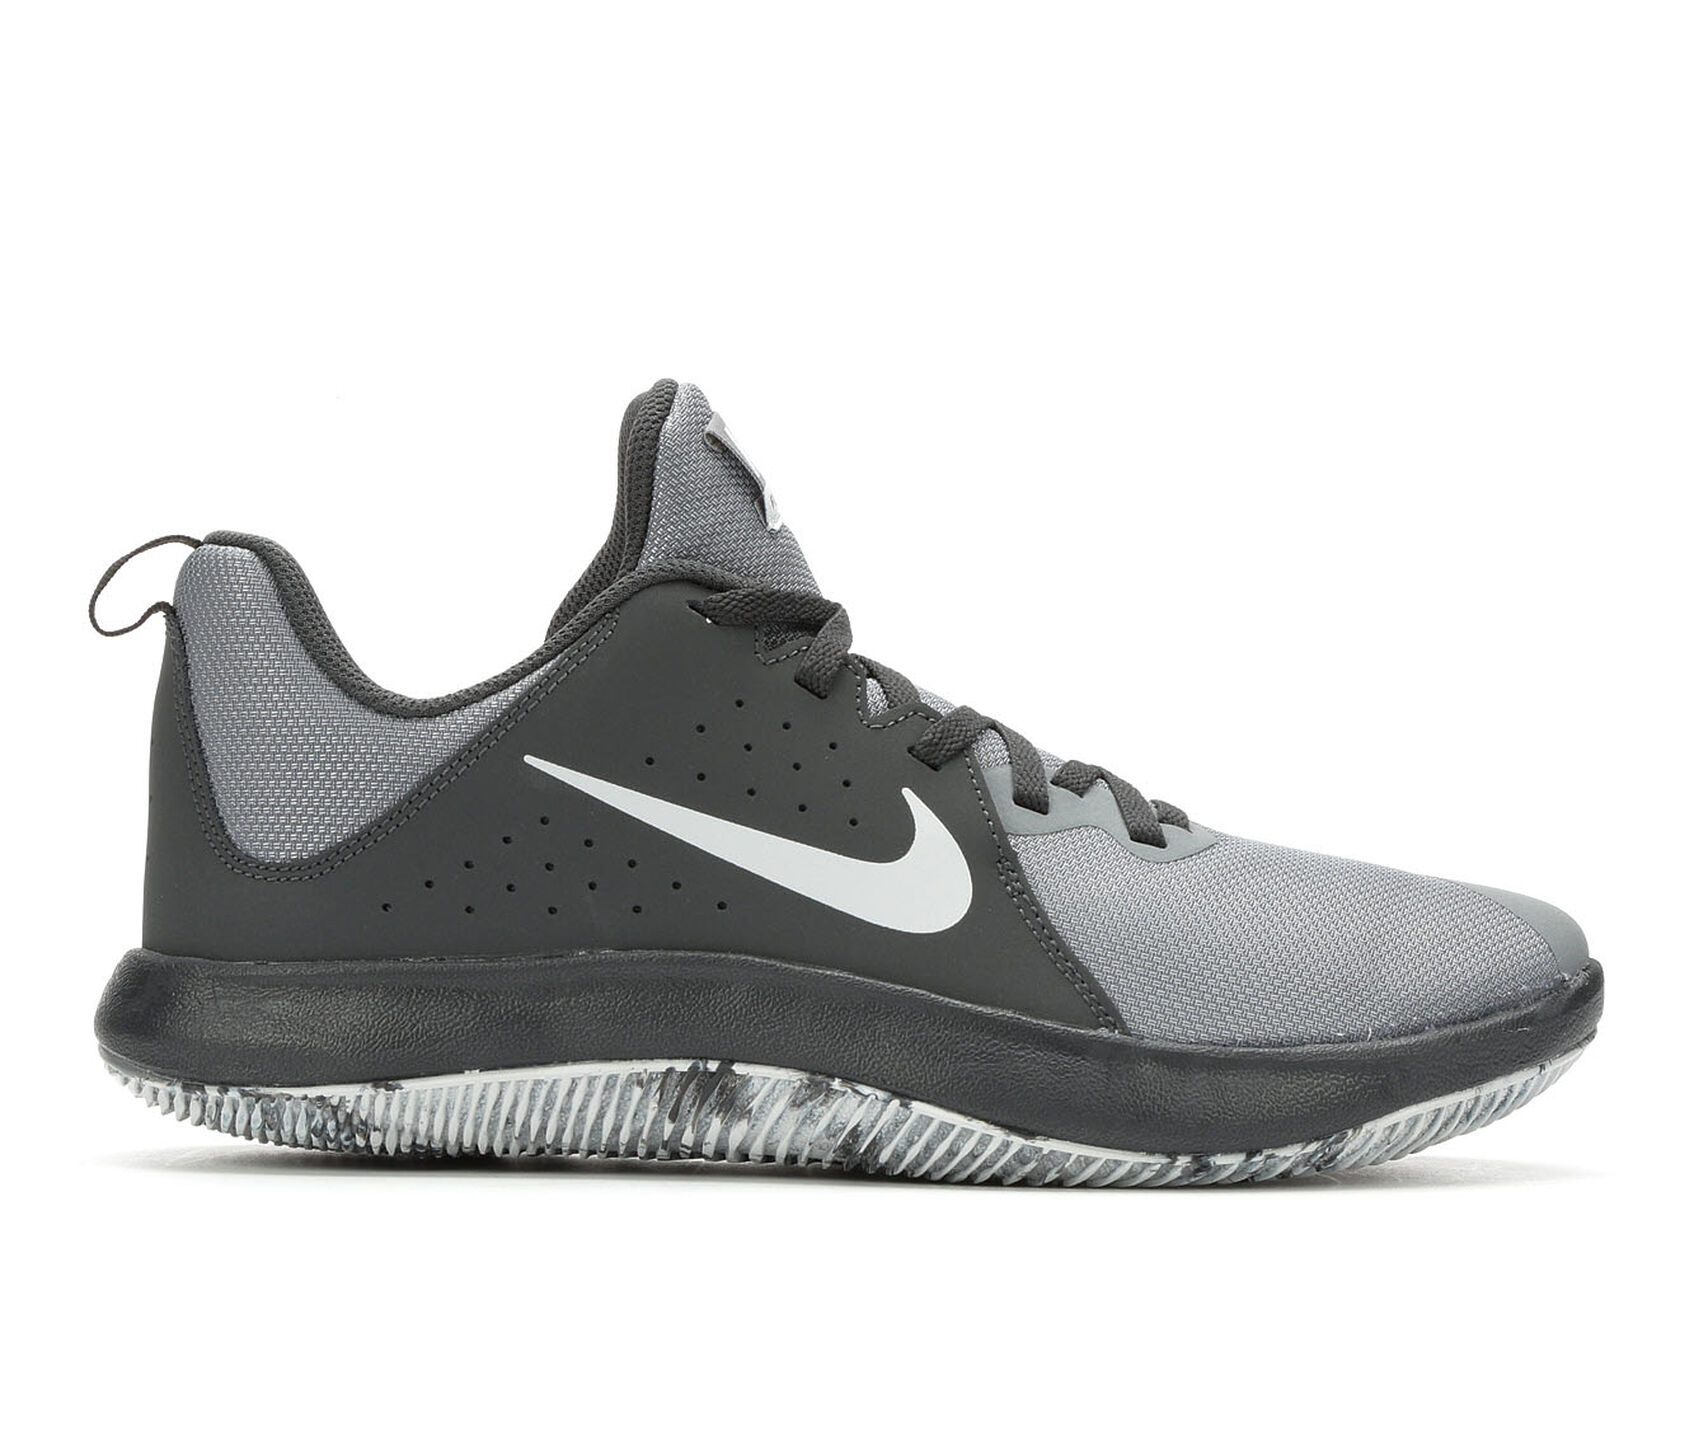 70d03fa1 Men's Nike Fly By Low NBK Basketball Shoes | Shoe Carnival